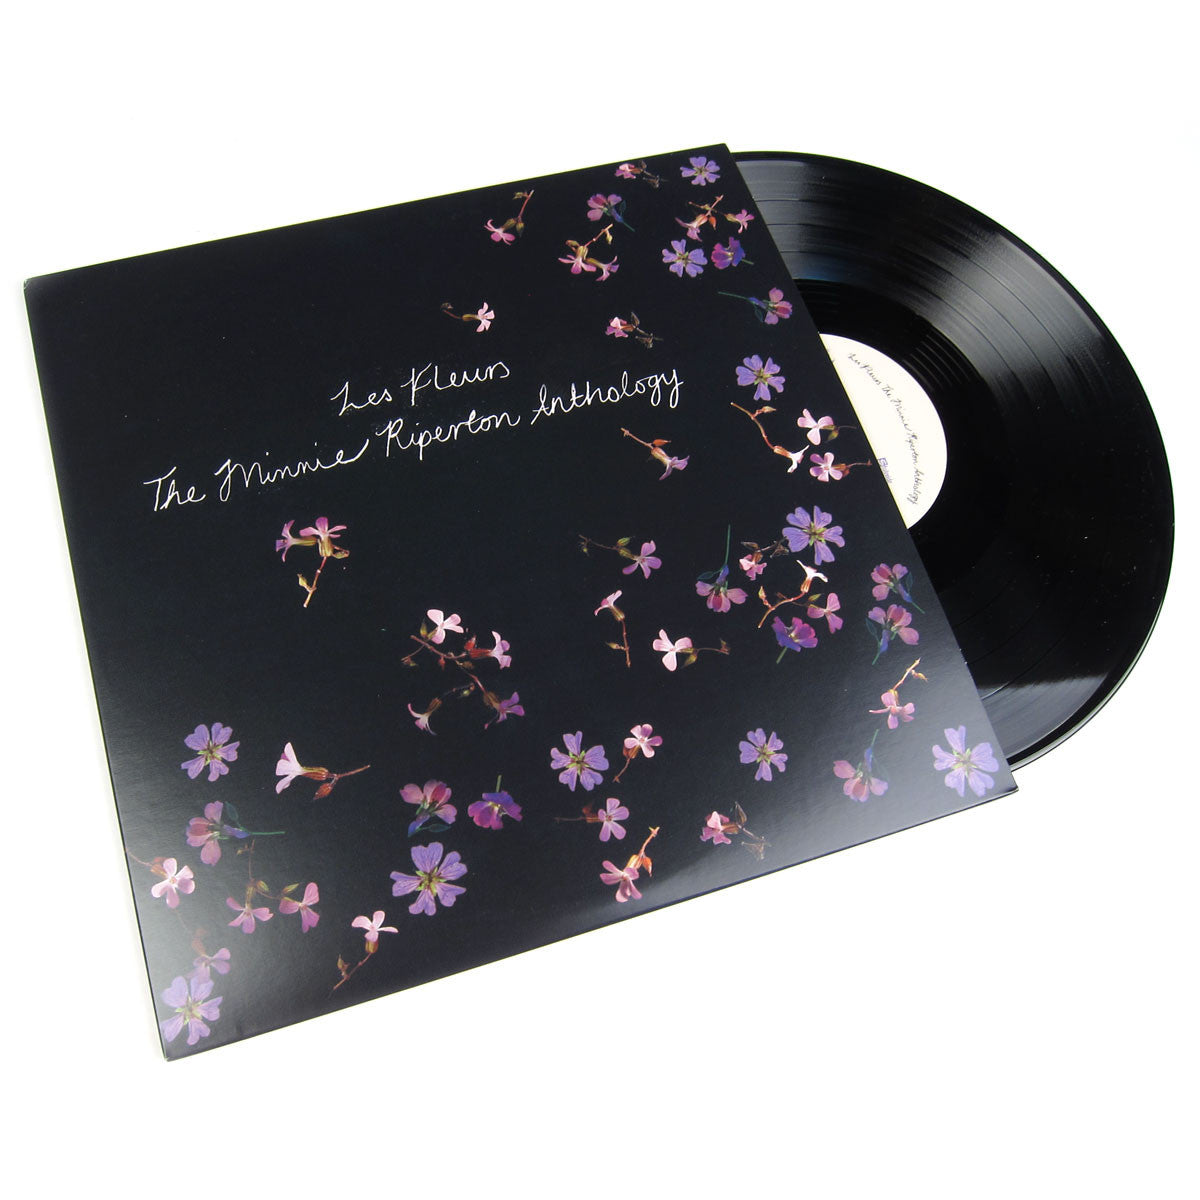 Minnie Riperton: Les Fleurs - The Minnie Riperton Anthology Vinyl 2LP